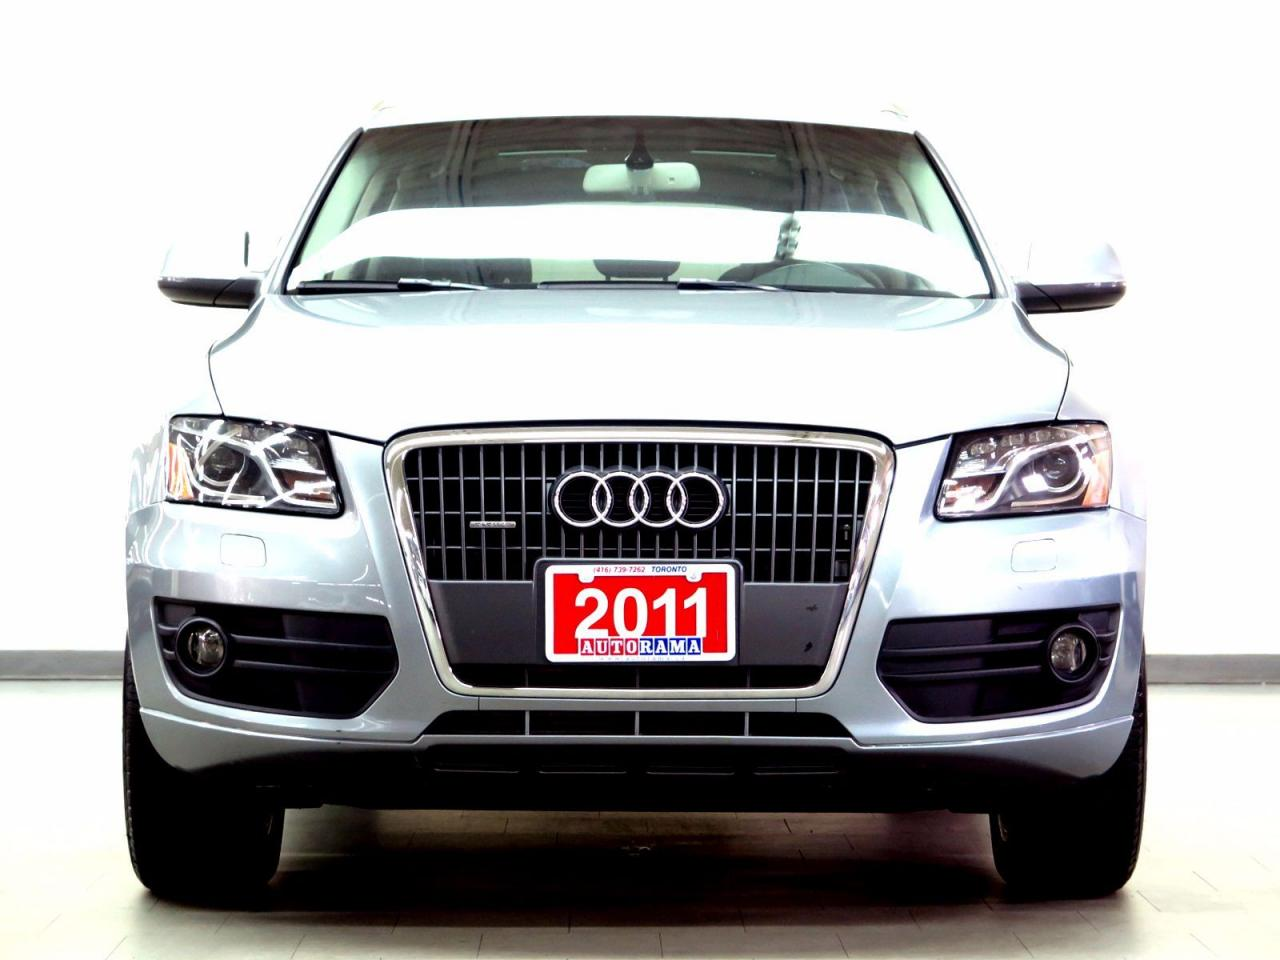 used 2011 audi q5 leather sunroof 4wd for sale in north york ontario. Black Bedroom Furniture Sets. Home Design Ideas